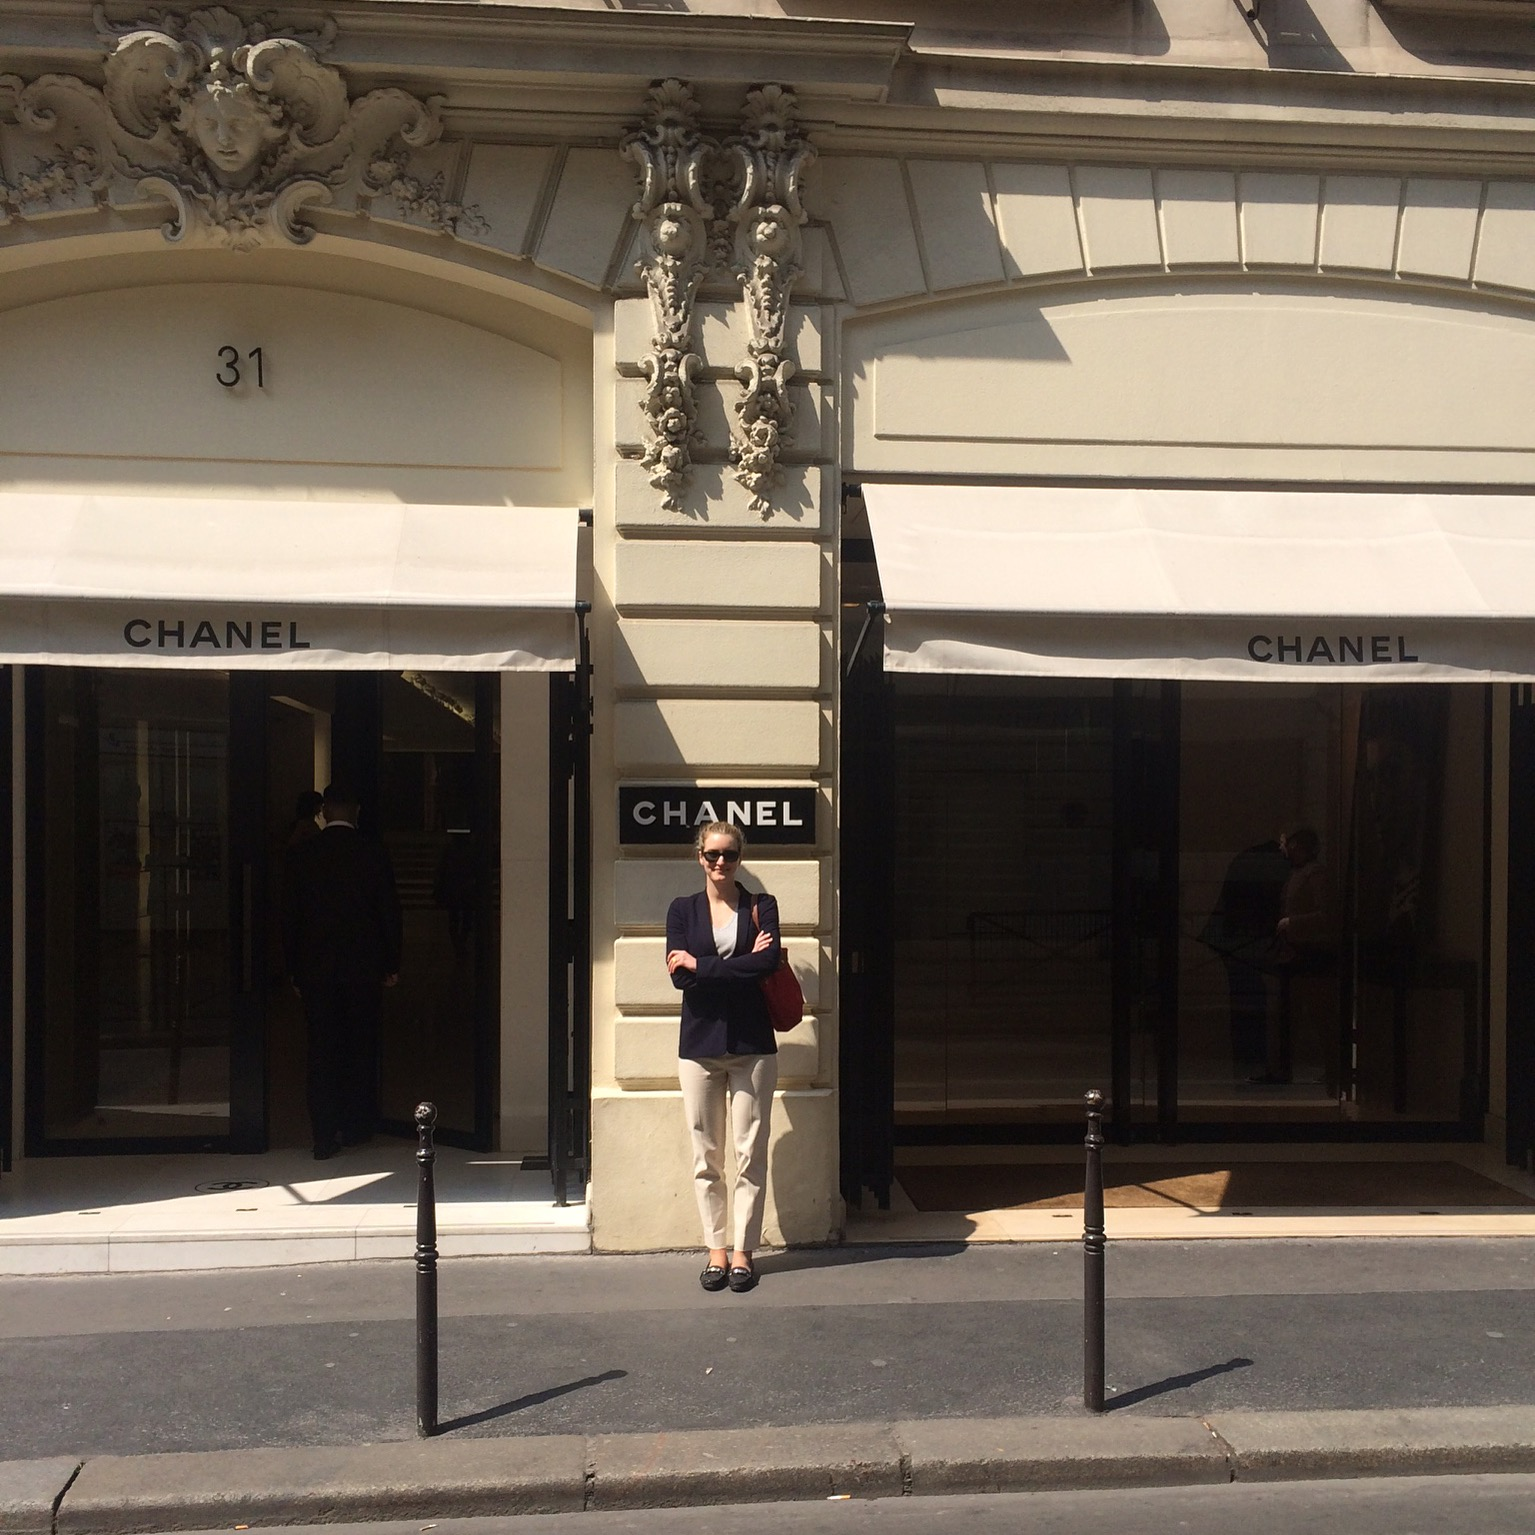 First visit to the Chanel store at 31, rue Cambon in Paris, France